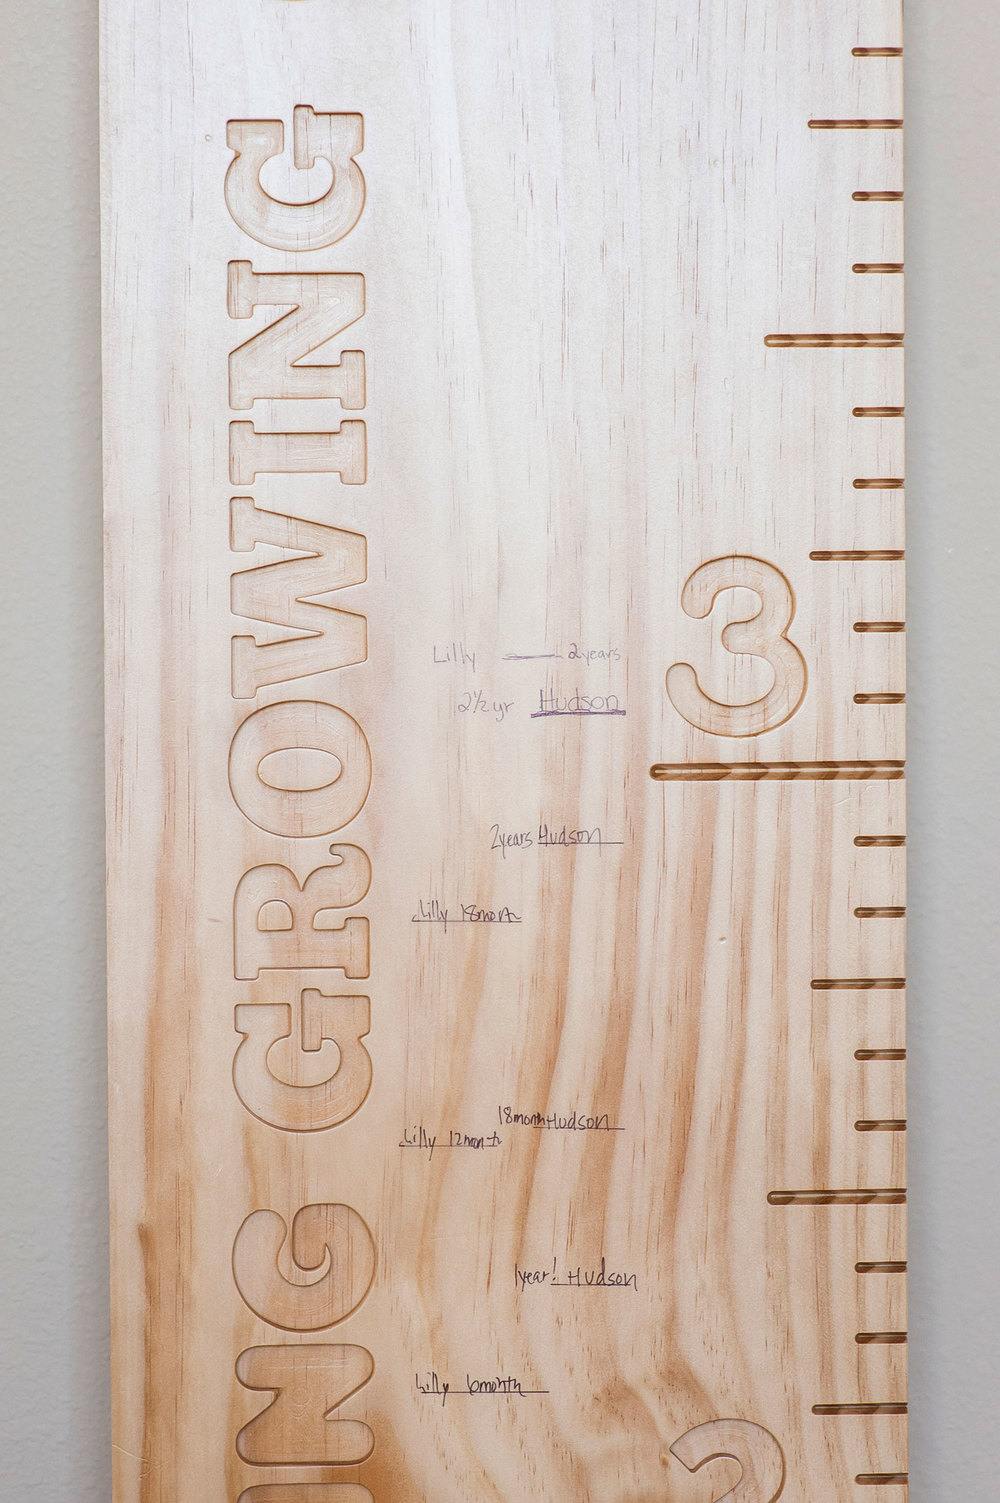 Board Detail / Radiata Pine Board / Multiple Fonts / Lacquer Finished